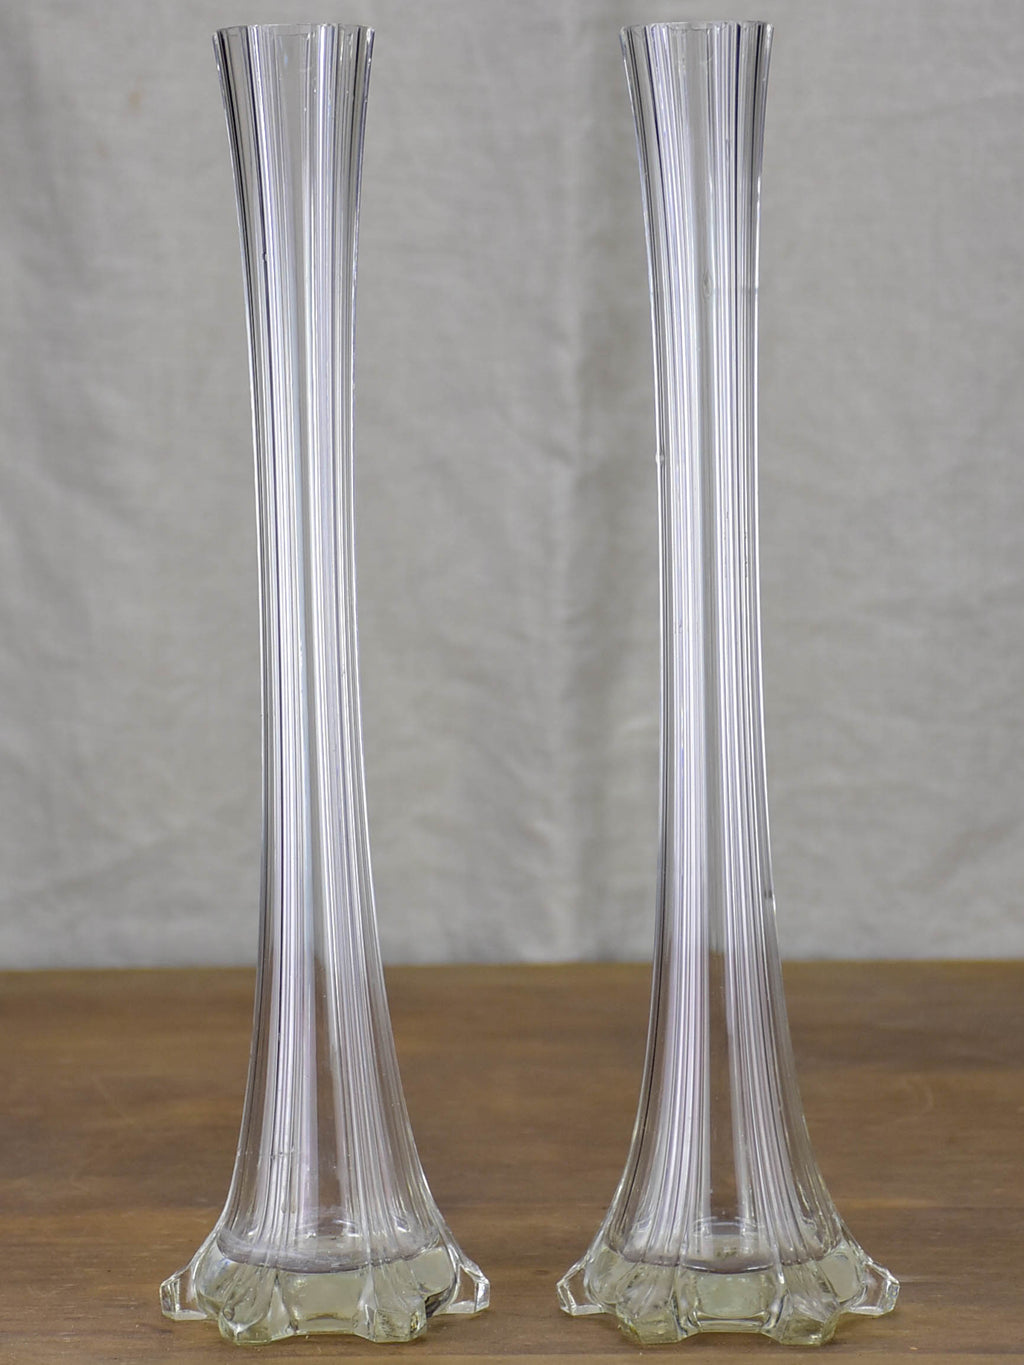 Two antique French solifleur glass vases - tall